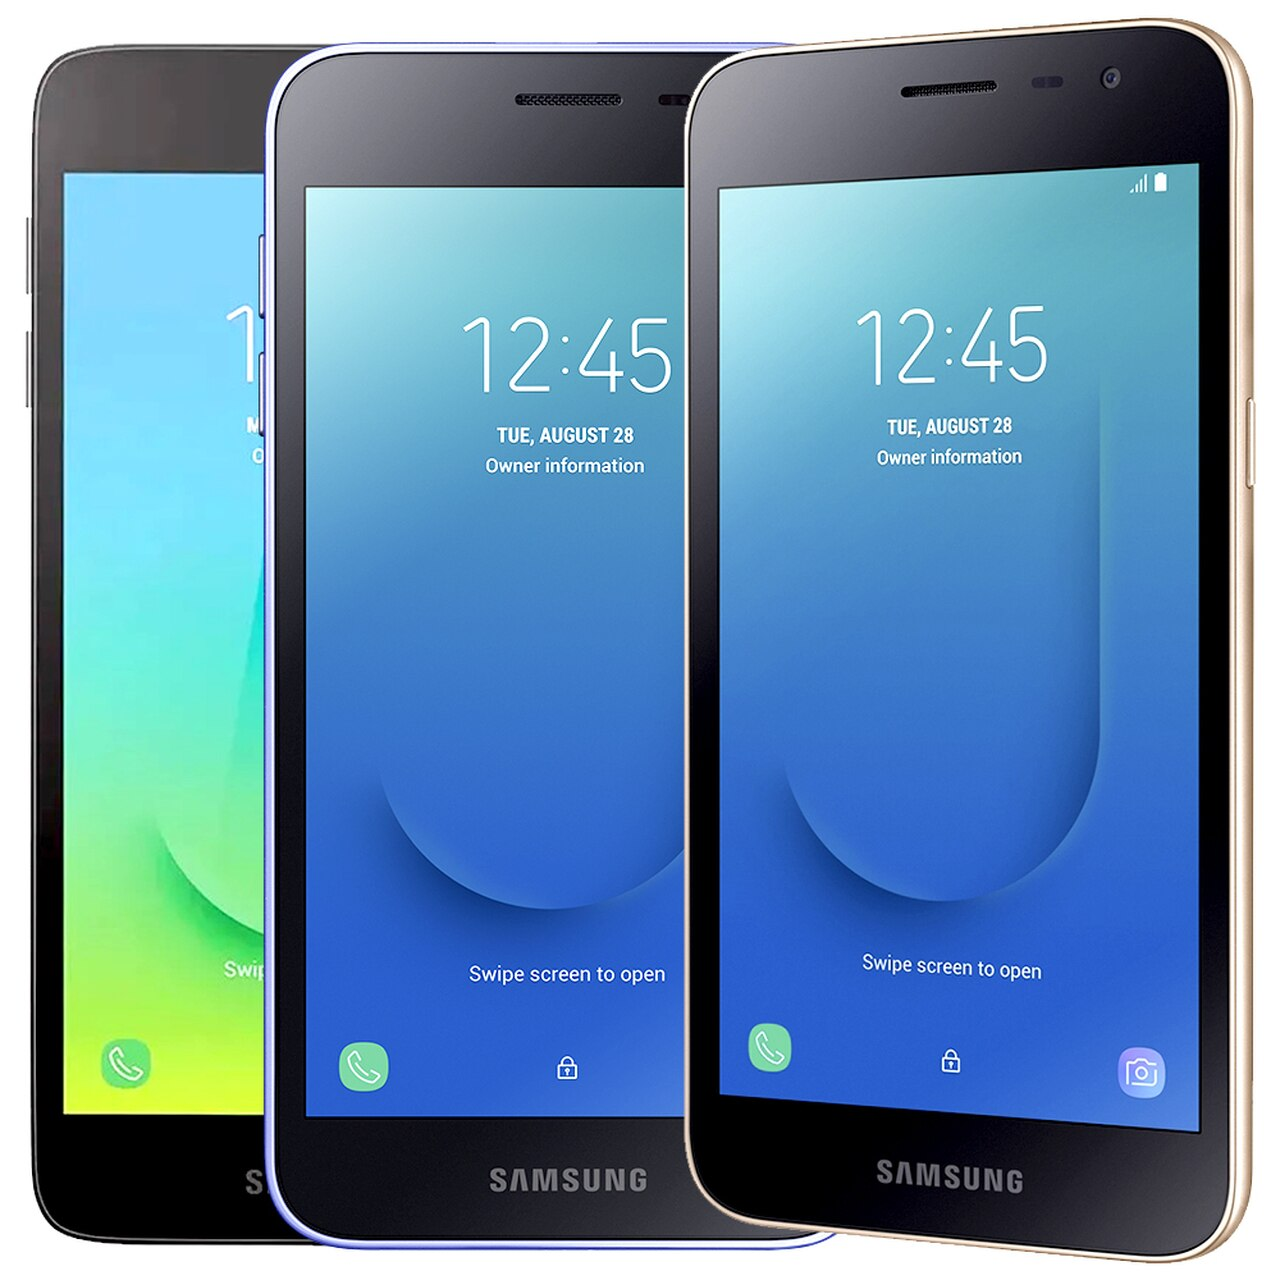 Samsung Galaxy J2 Core All 1280x1280 Download Hd Wallpaper Wallpapertip